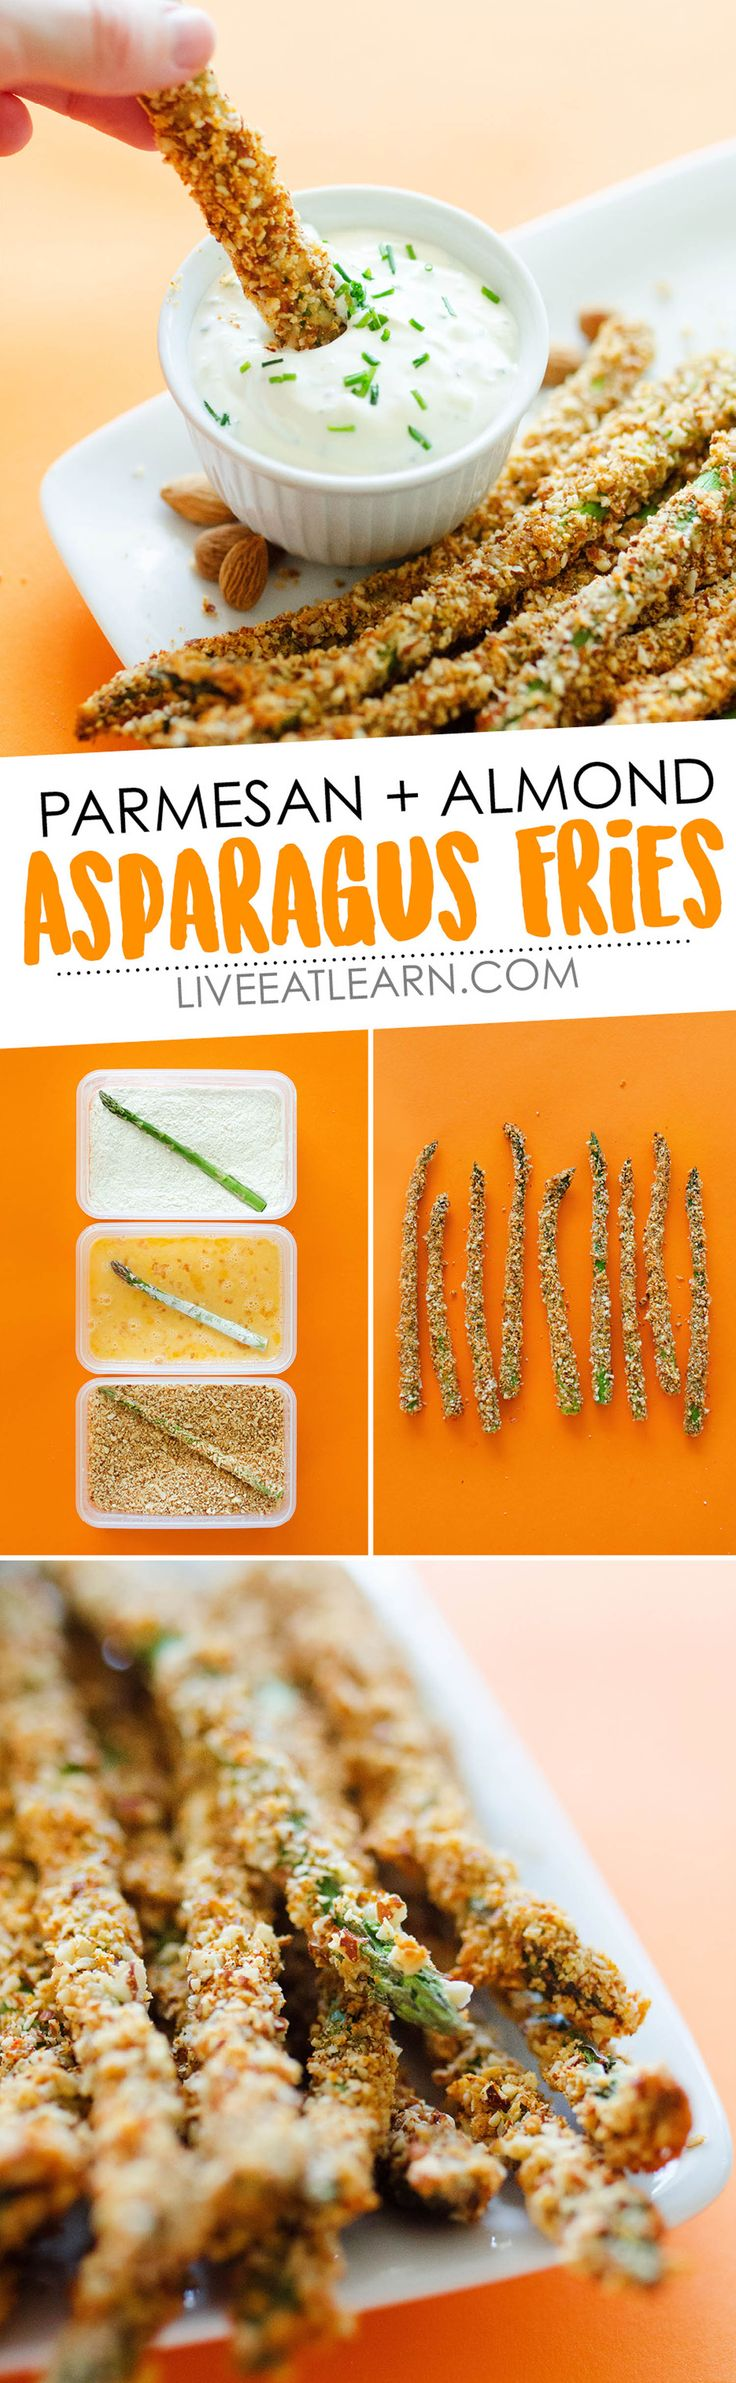 This Parmesan and Almond Baked Asparagus Fries recipe is a low carb, way delicious way to spruce up your healthy side dish tonight, and in under 30 minutes! It's a high protein vegetable side dish that's also gluten-free, and with a chive yogurt sauce is sure to be a hit at your family dinner table tonight. // Live Eat Learn